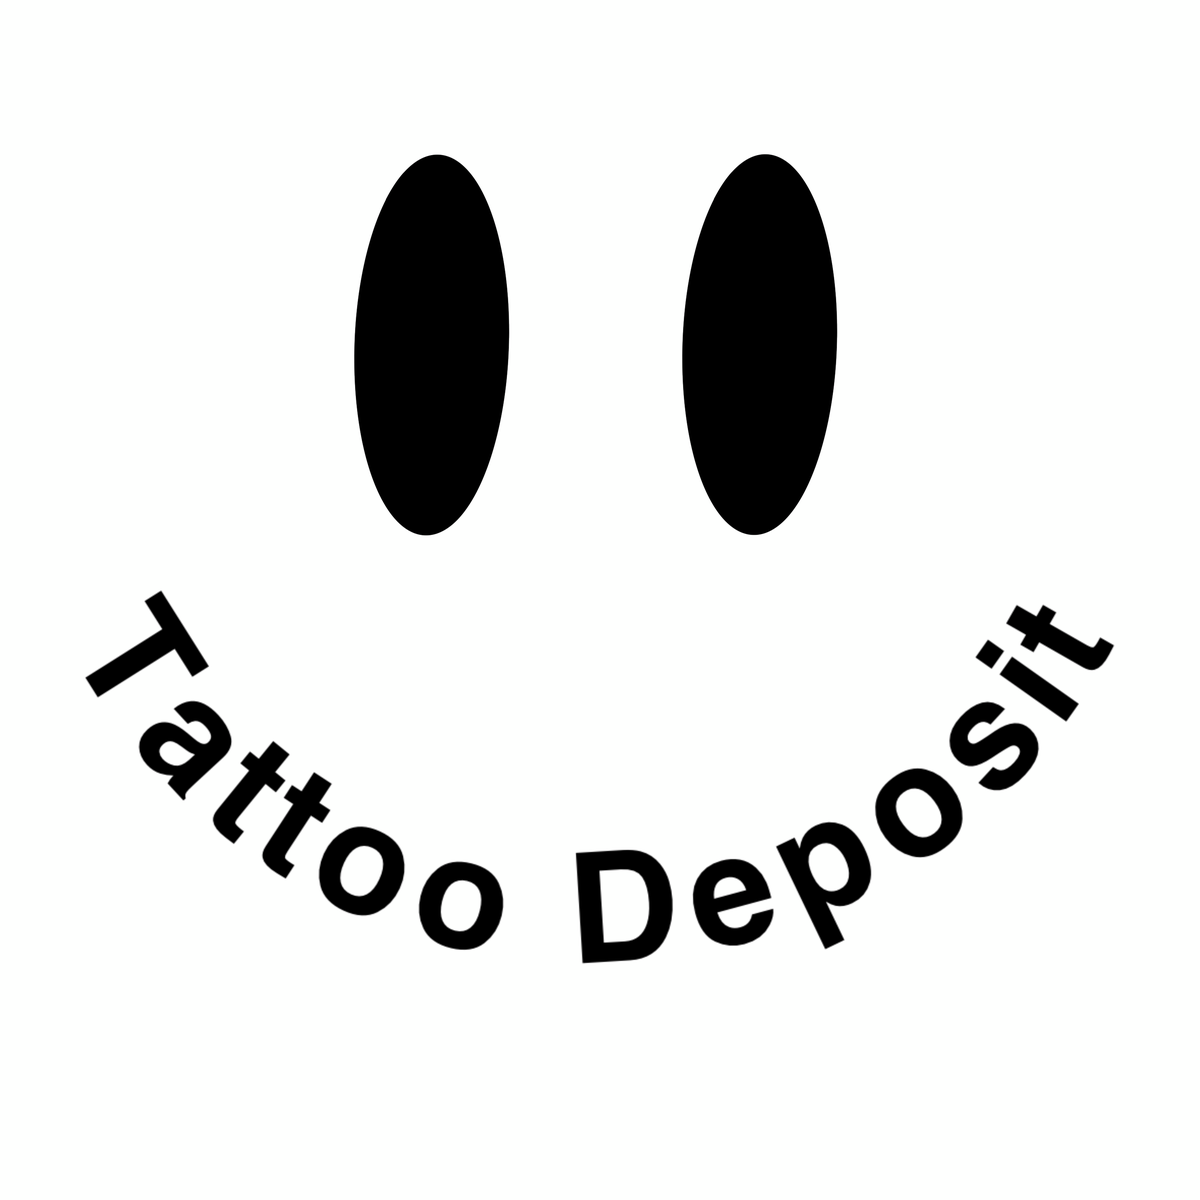 Image of Appt Deposit